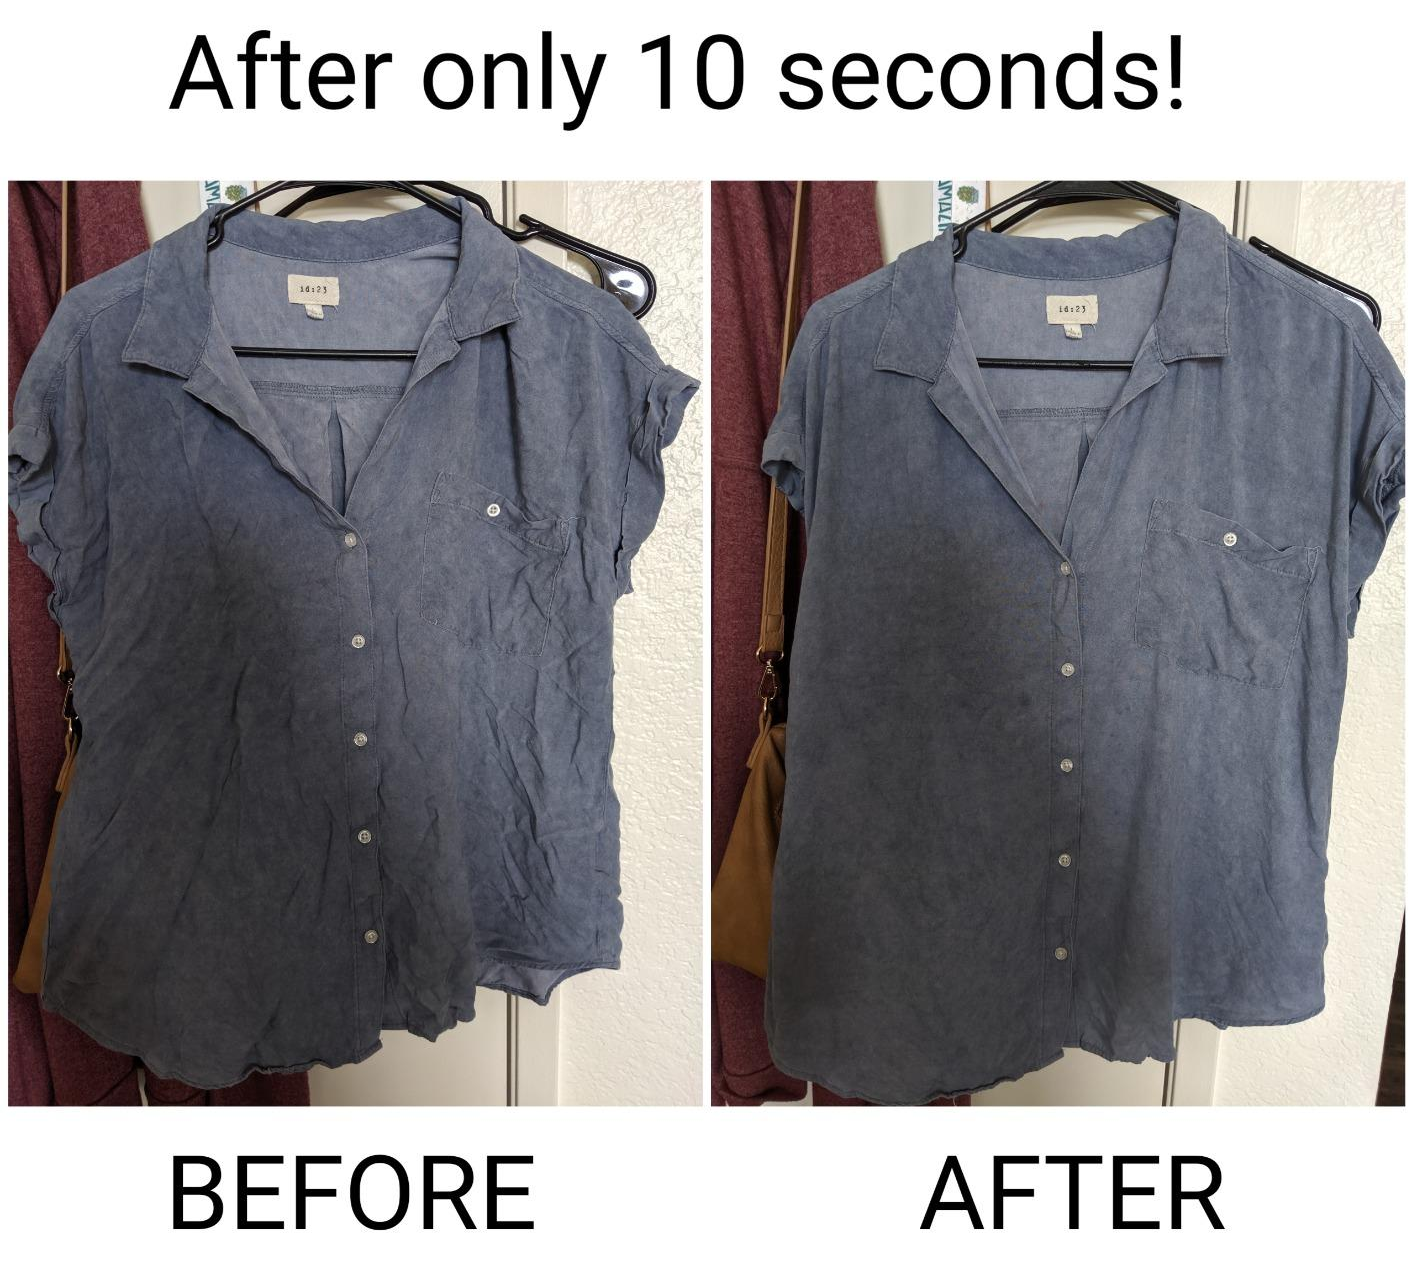 a split image of a reviewer's shirt before and after using the wrinkle release spray